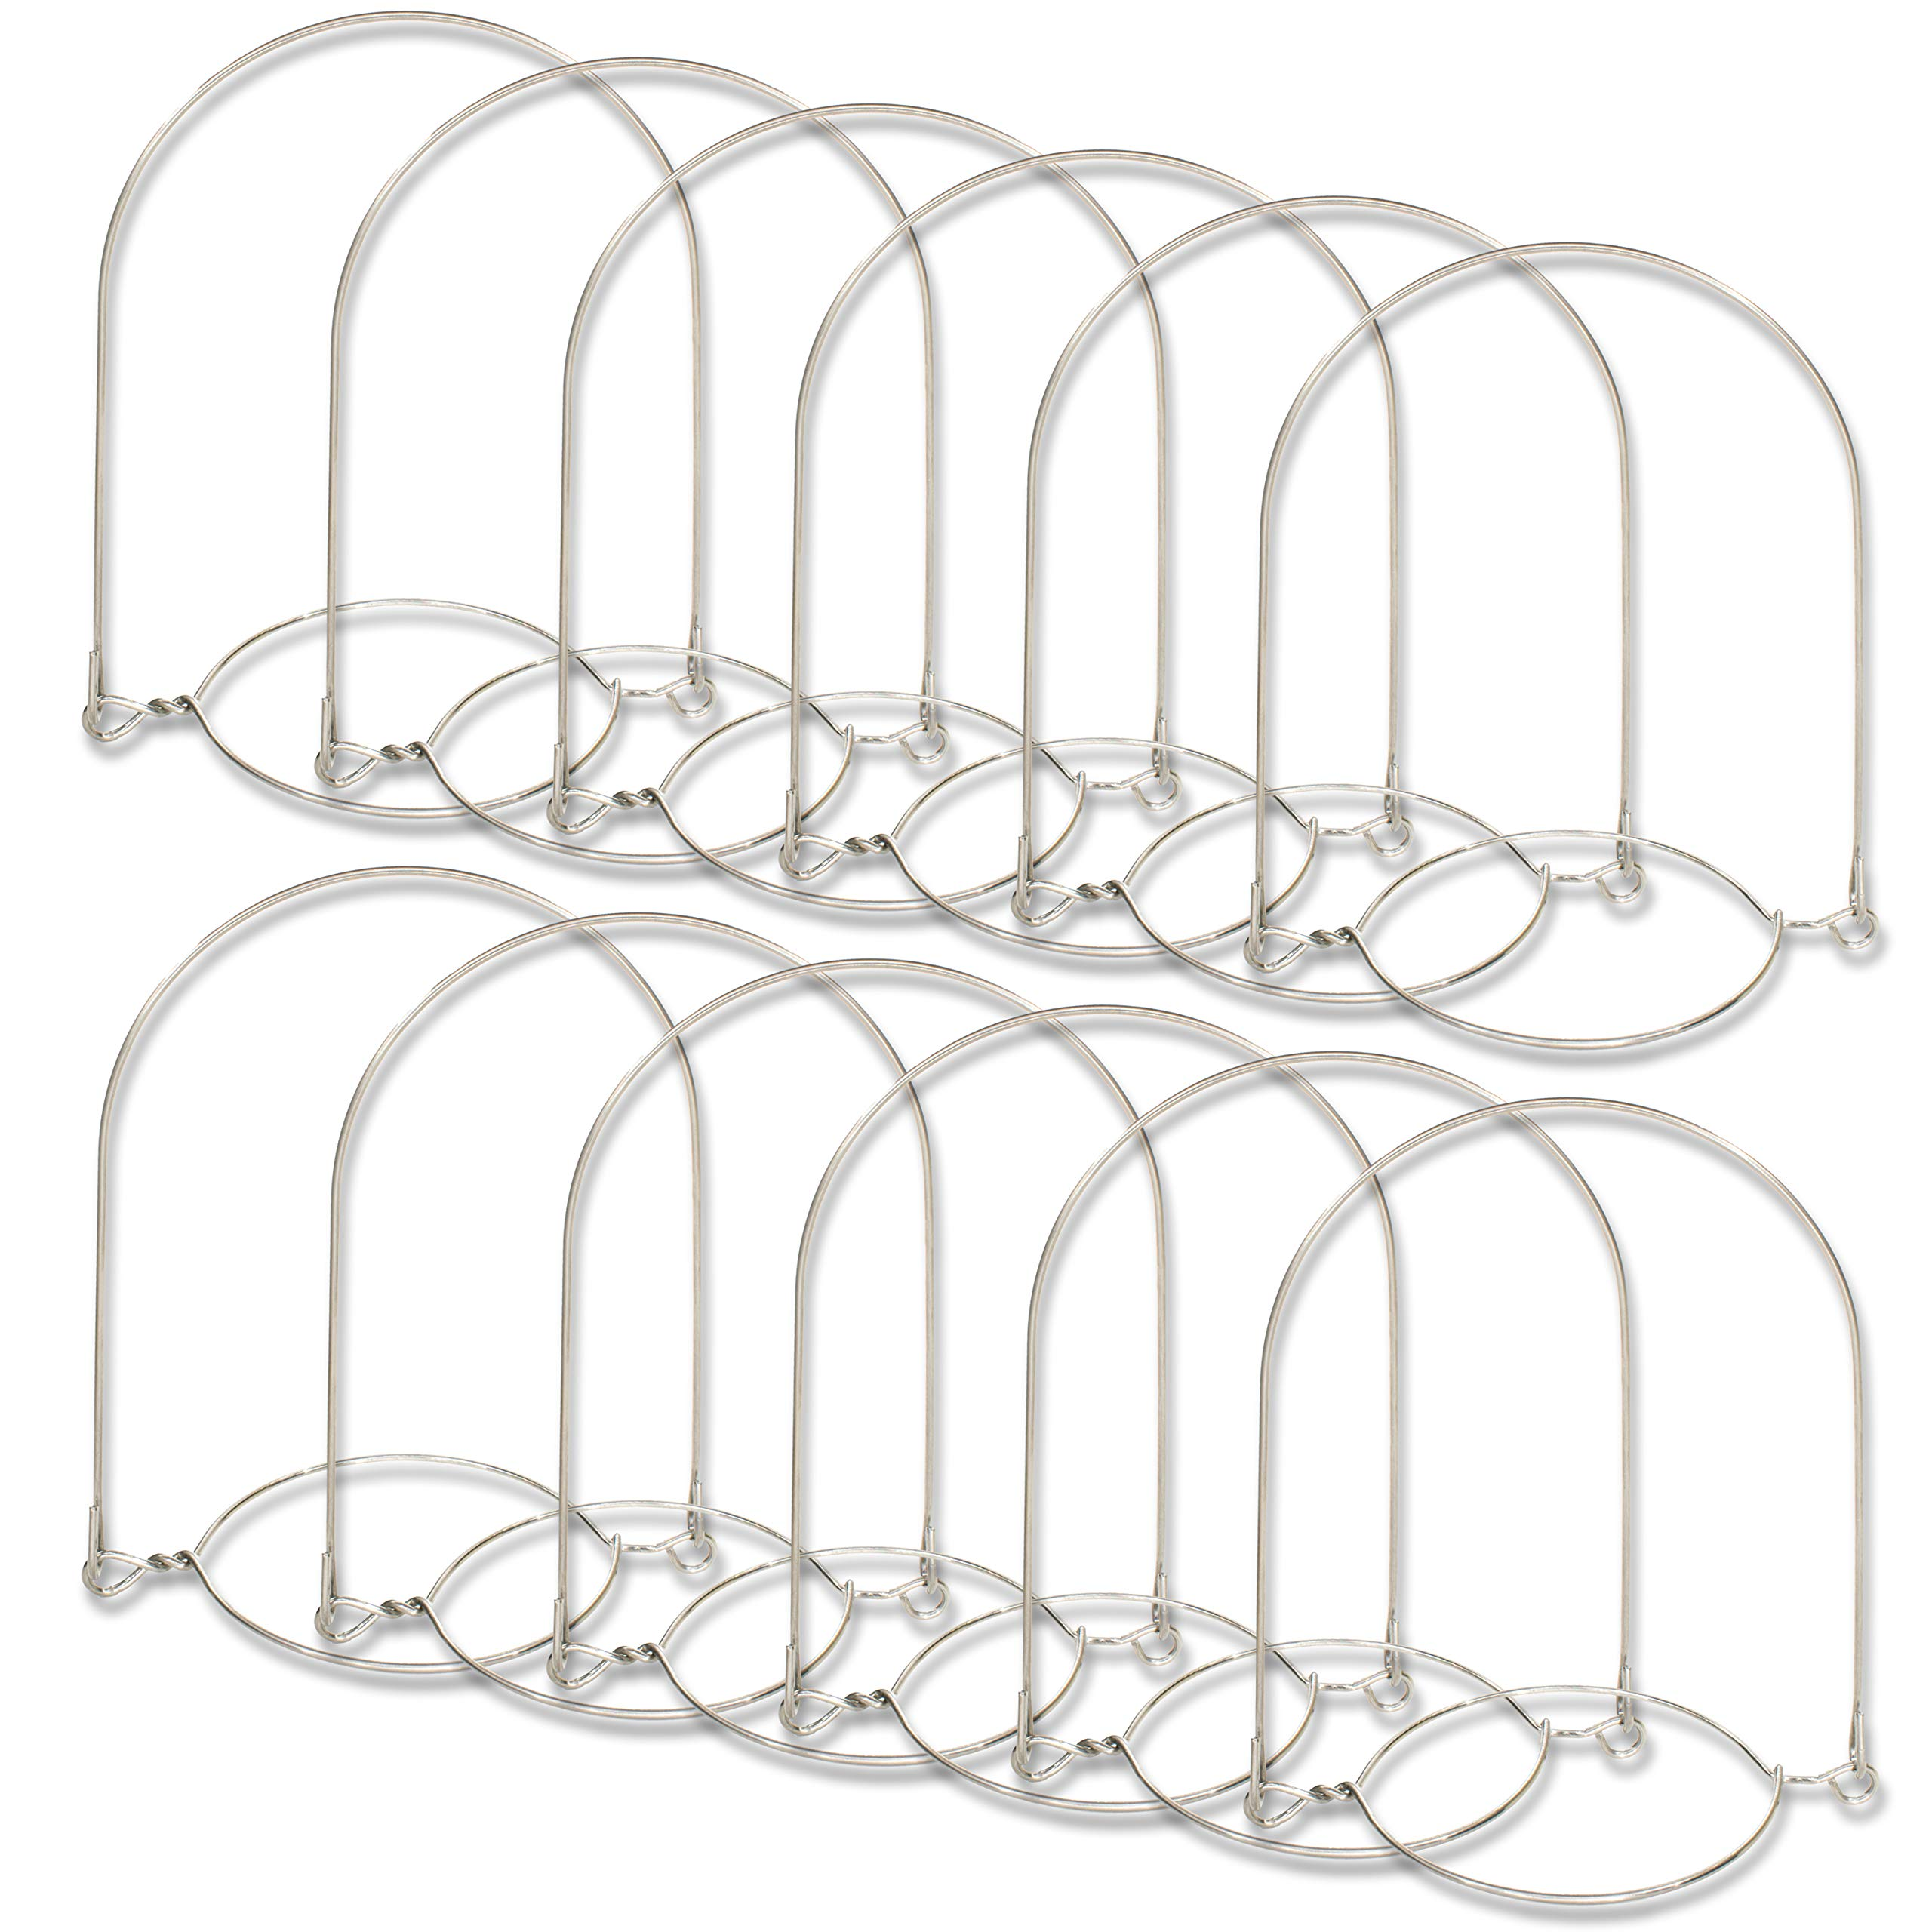 Sunshine Mason Co. Stainless Steel Wire Mason Jar Handle Hanger fits Regular Mouth, 12 Pieces